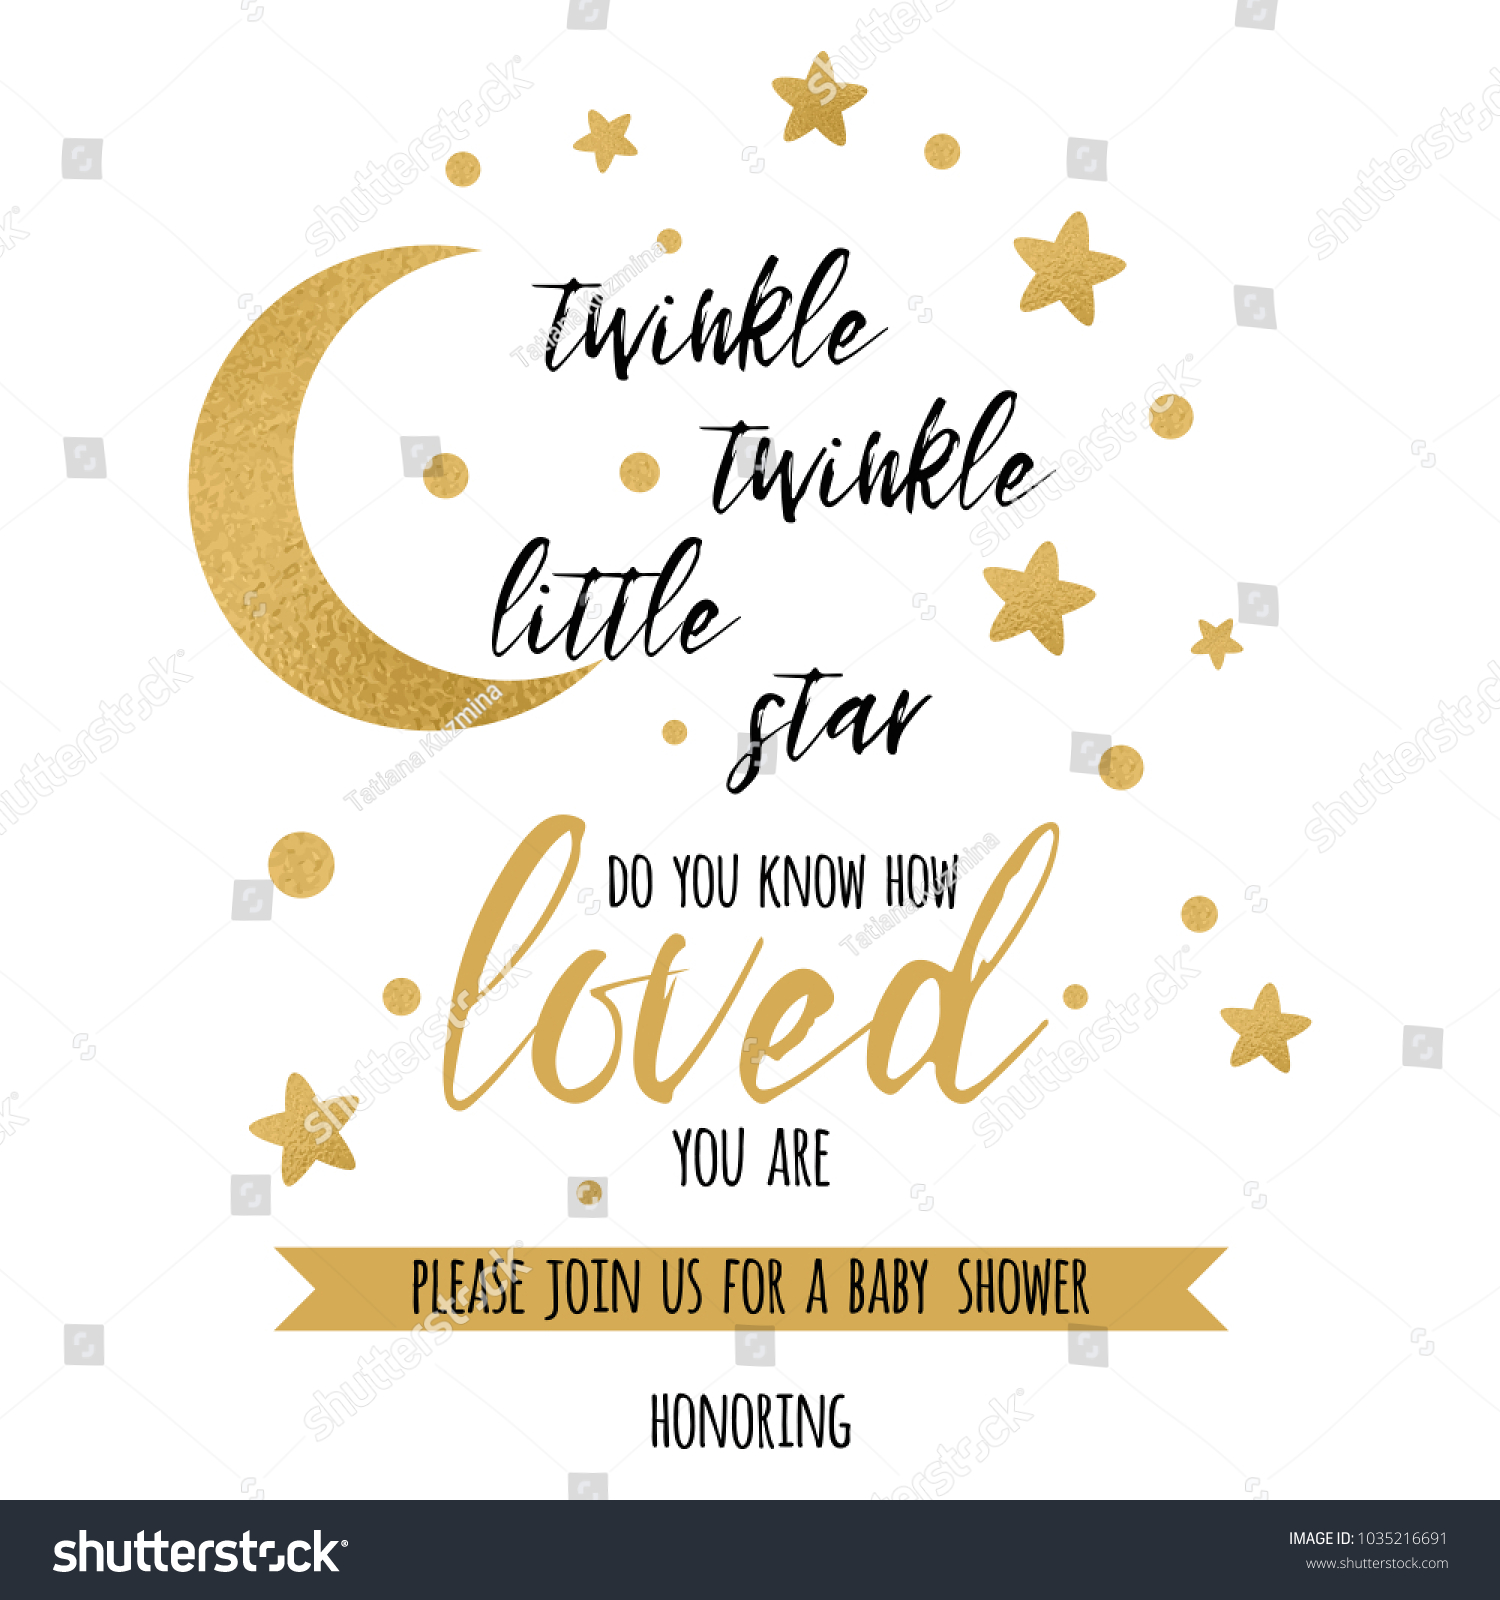 twinkle twinkle little star text with cute gold star and moon for girl baby shower card